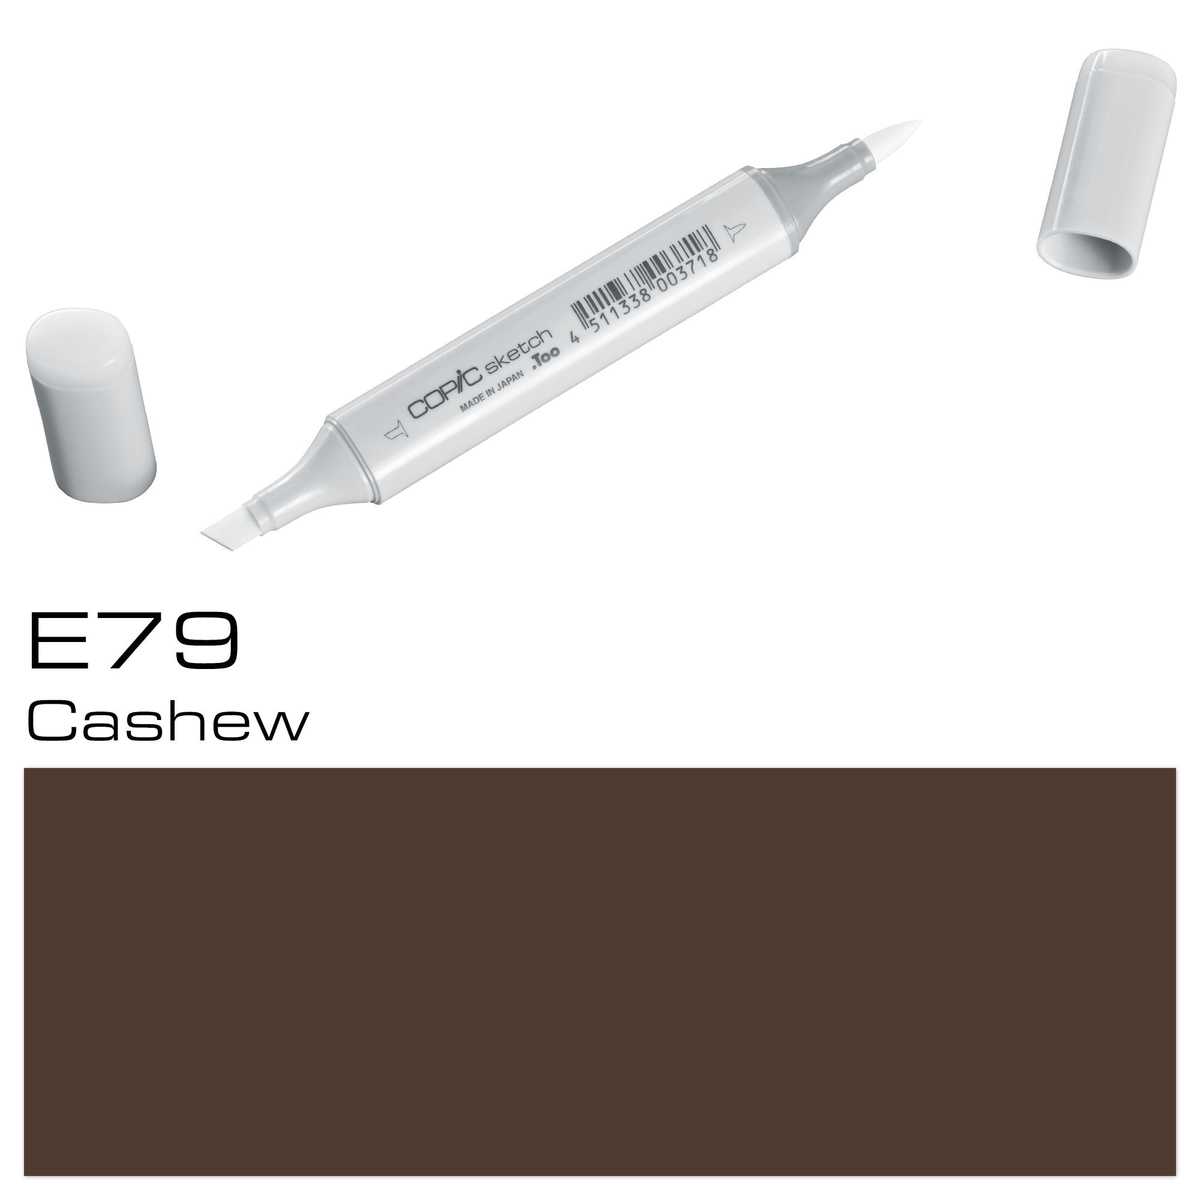 Copic Sketch E 79 cashew